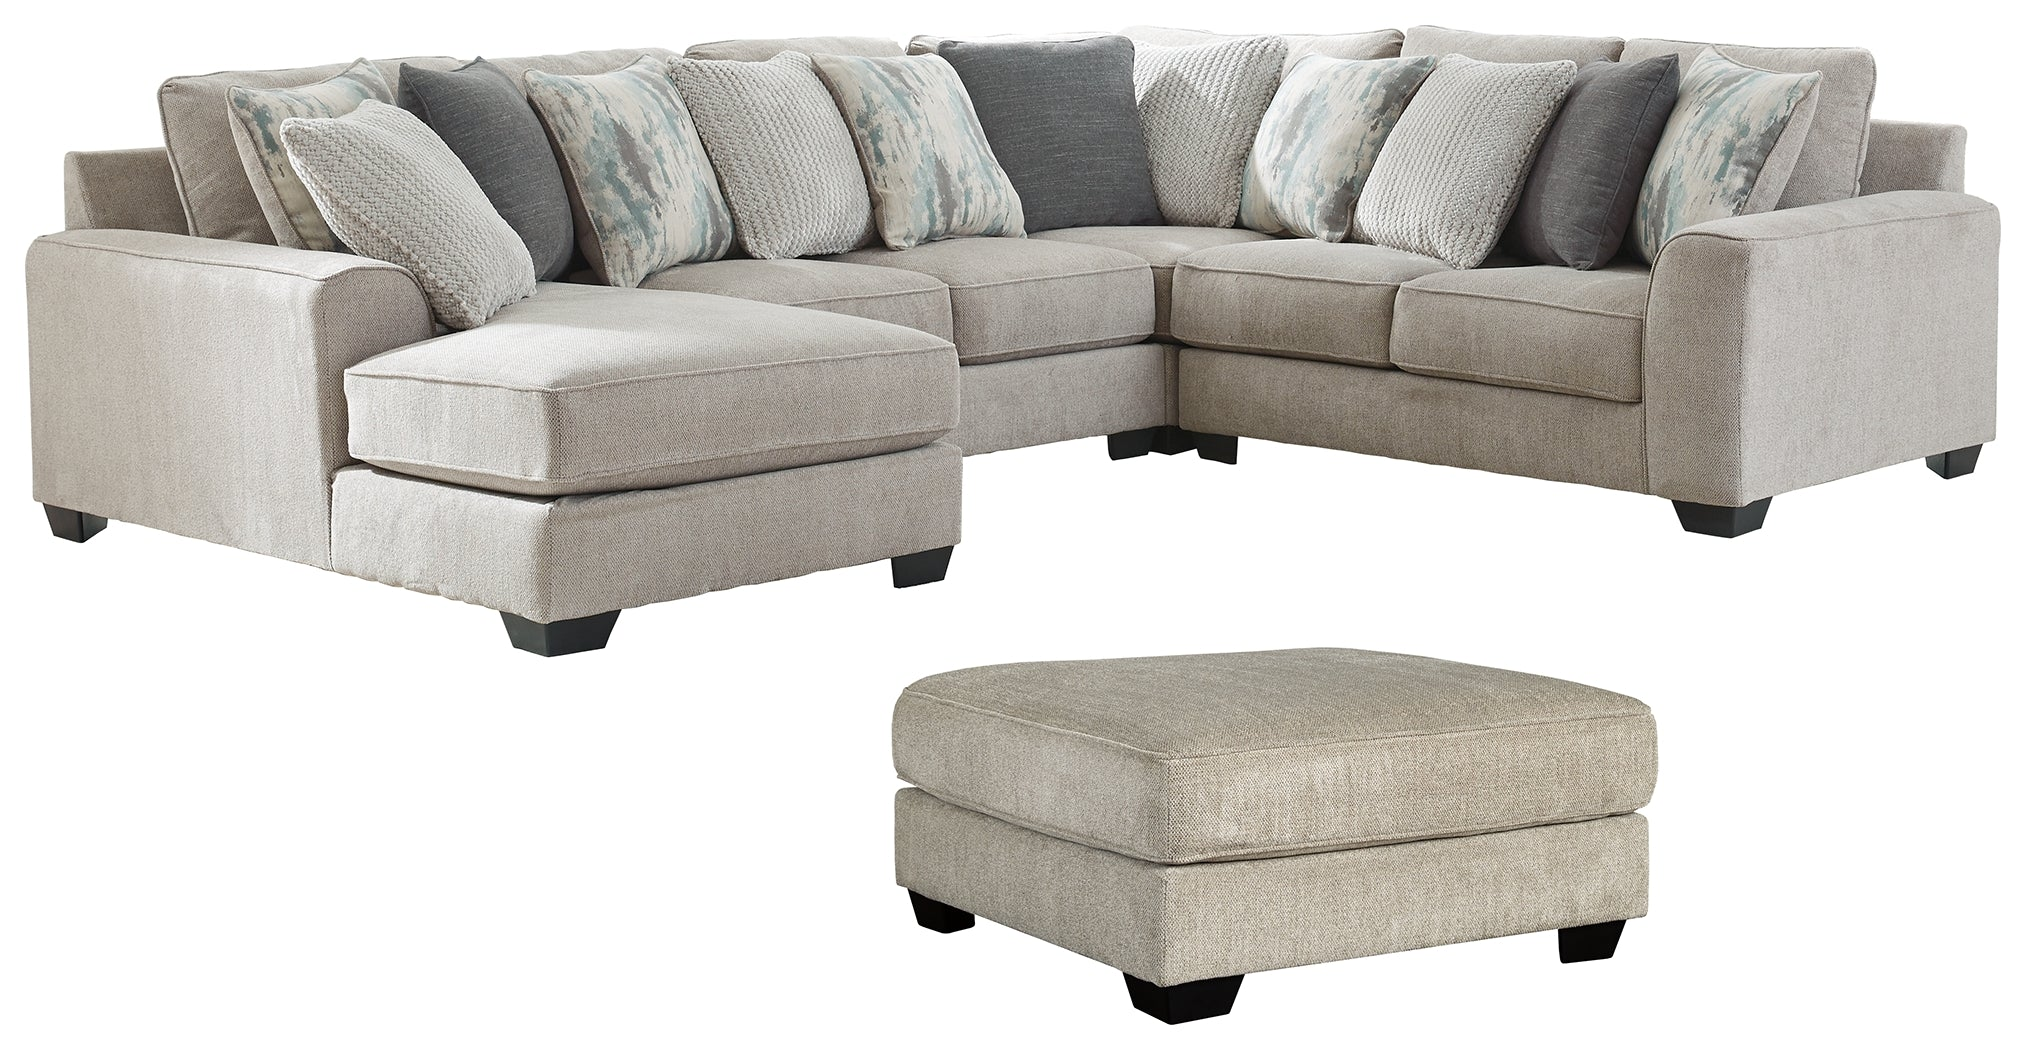 Ardsley Benchcraft 5-Piece Upholstery Package